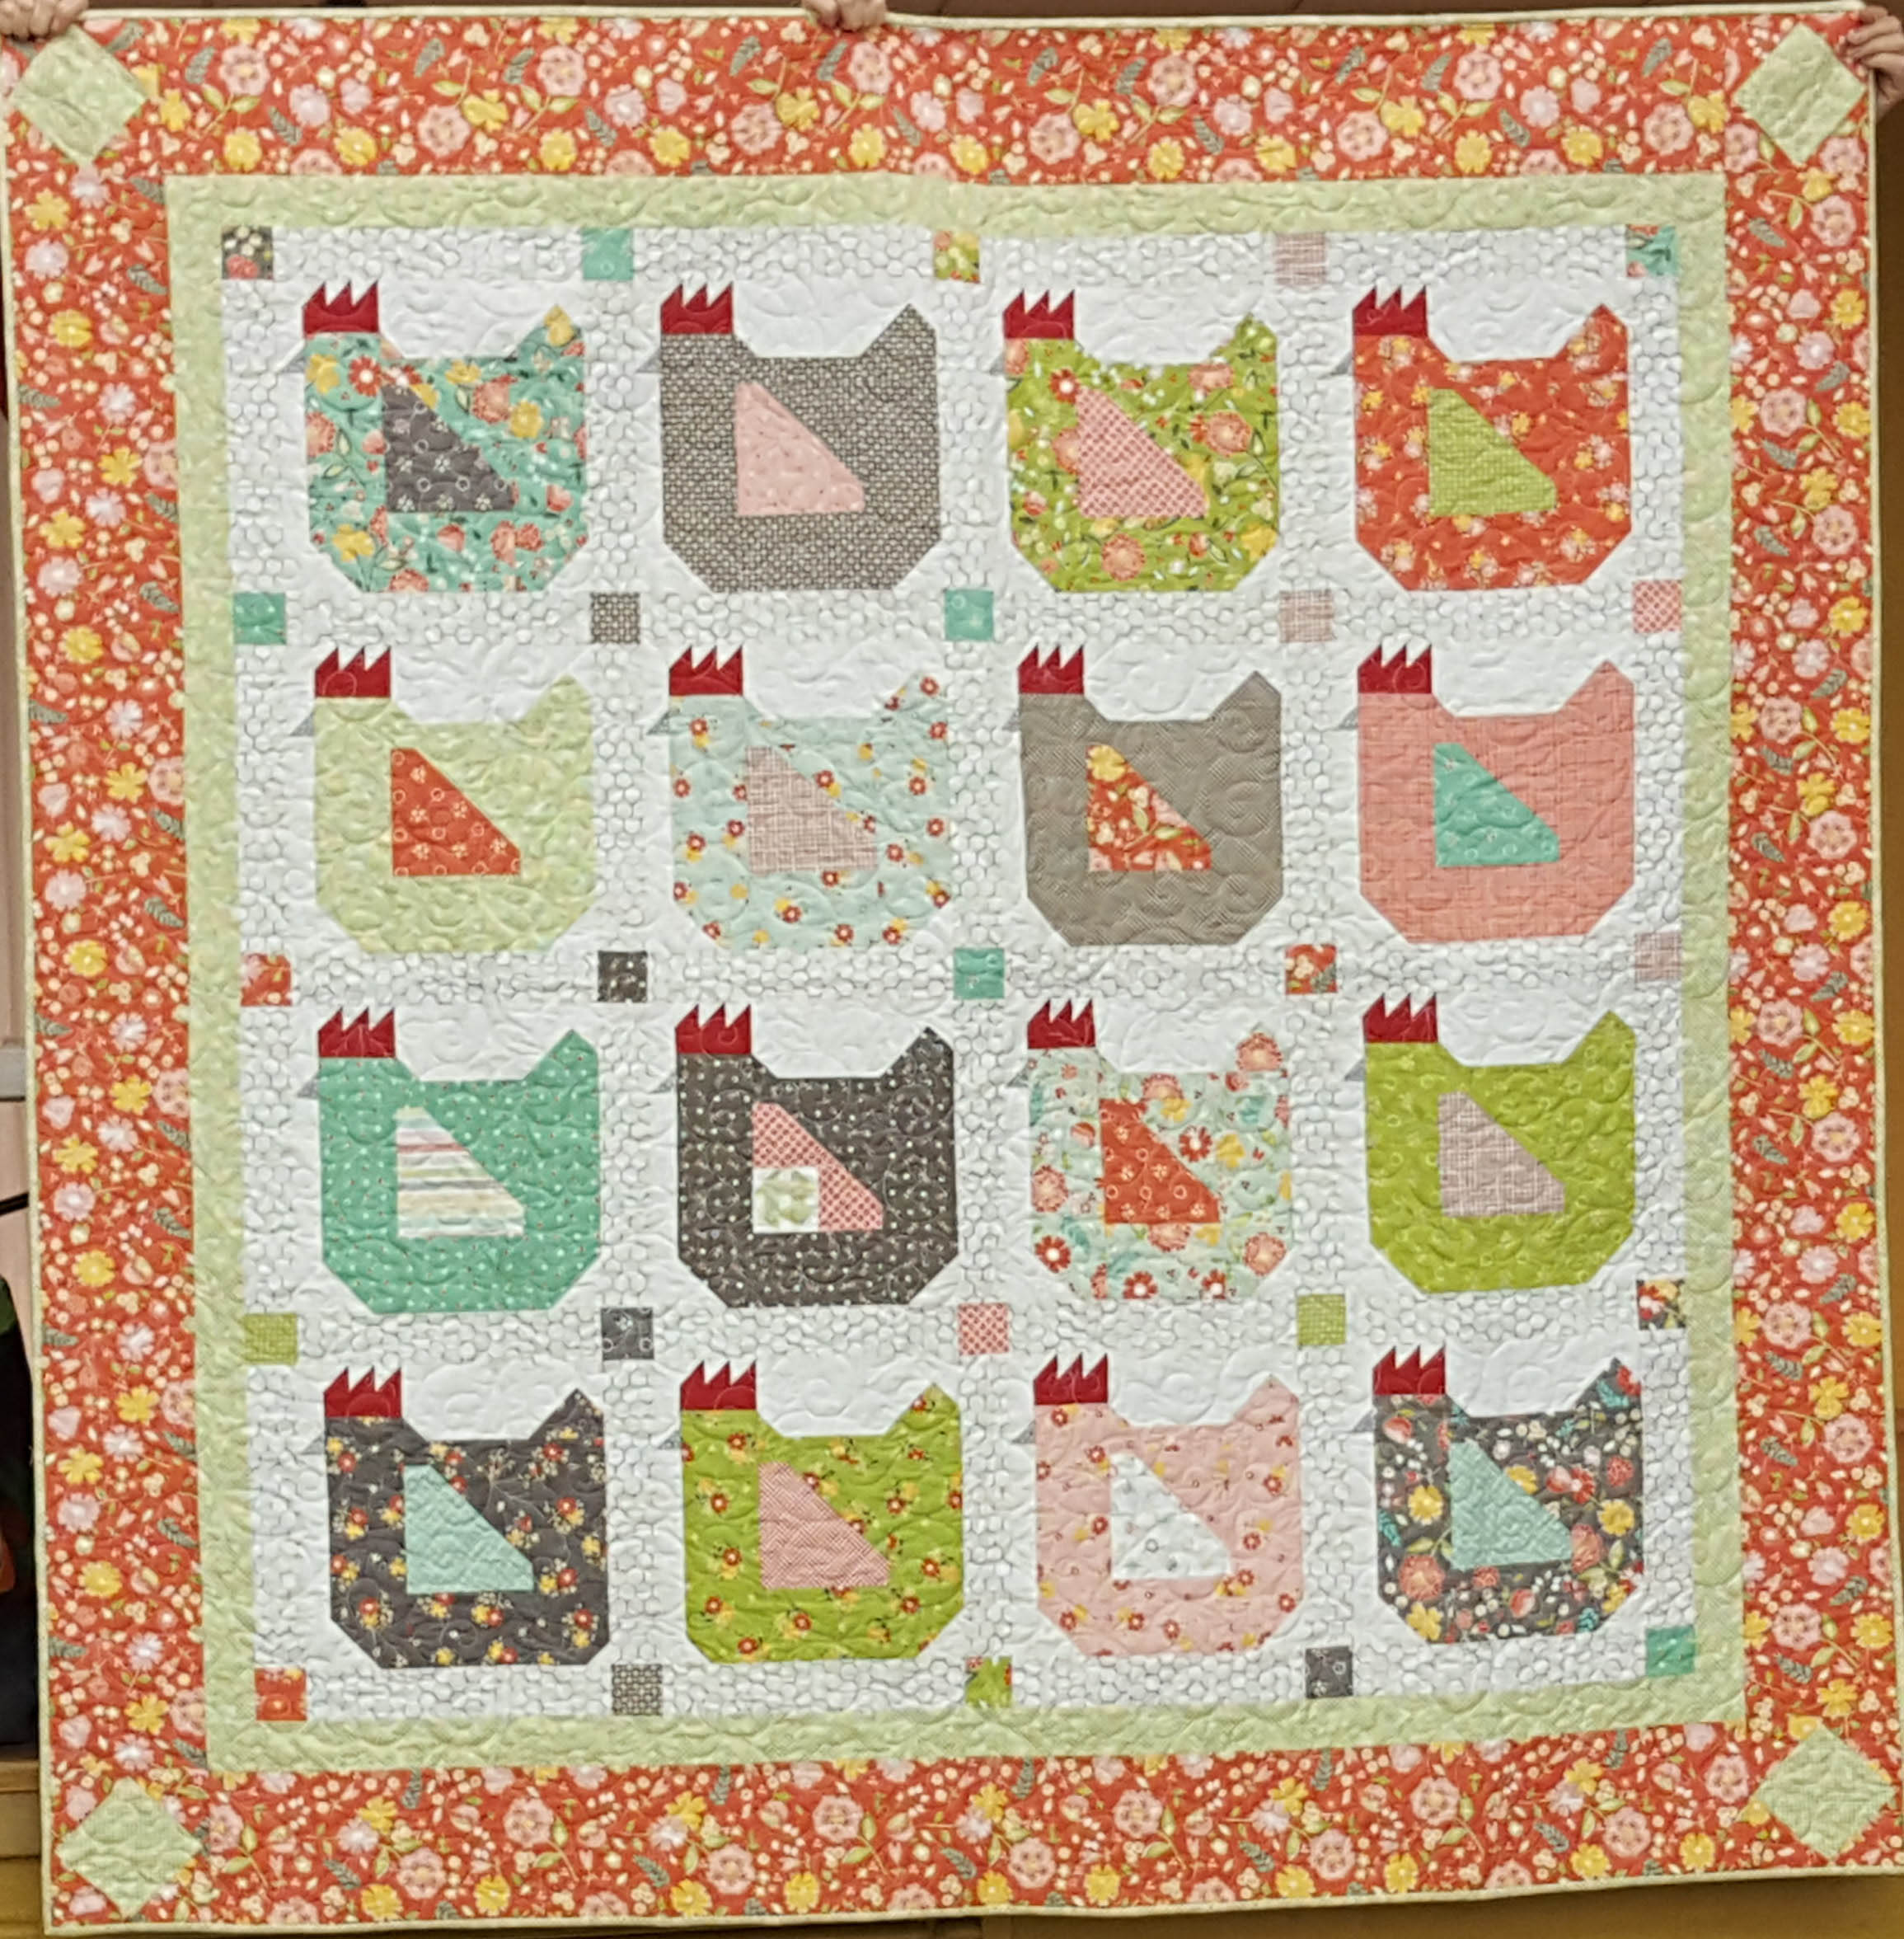 Why do Chickens end up on quilts?